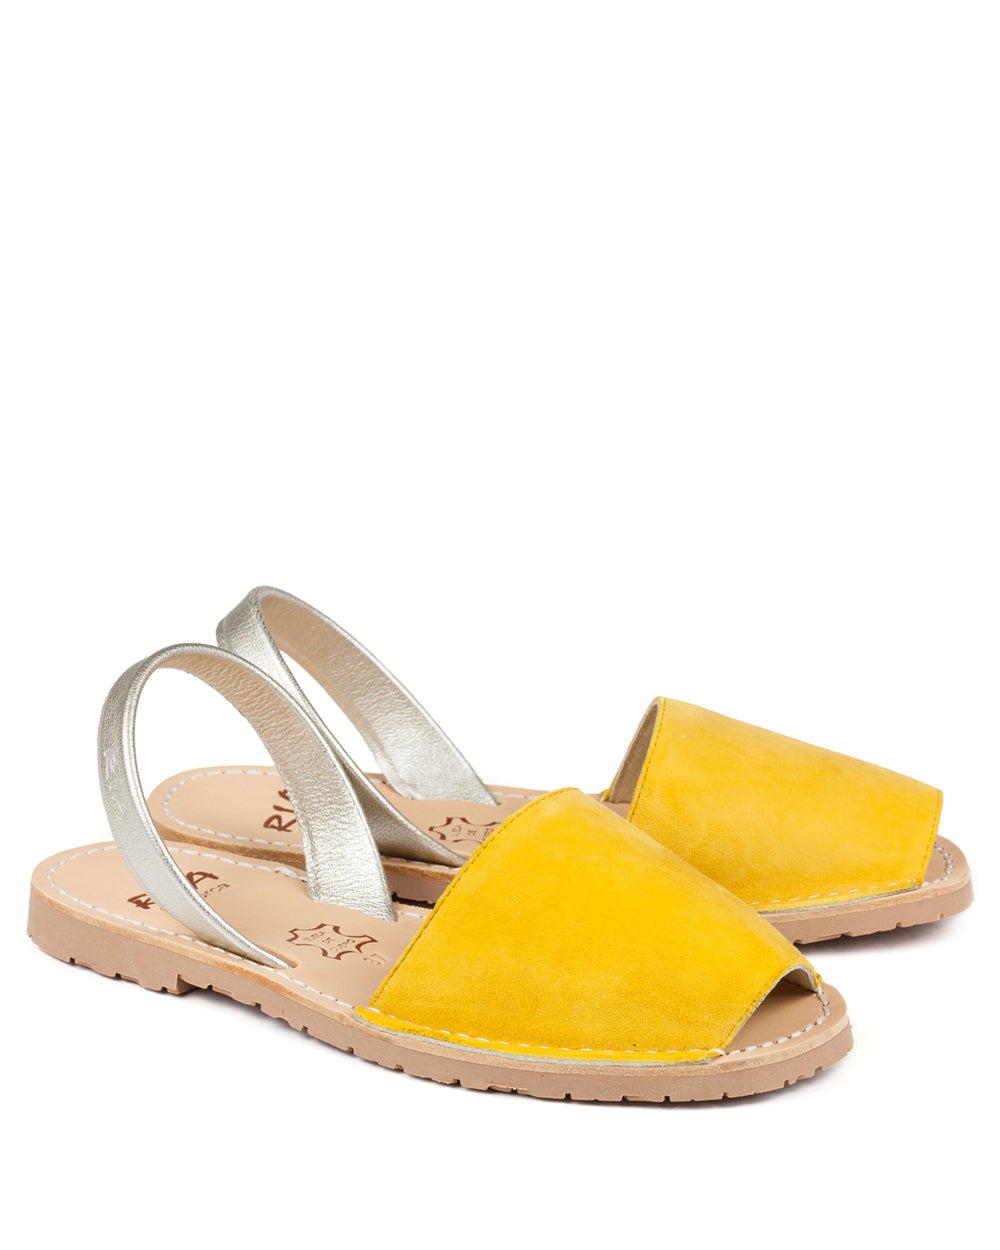 Menorcan Sandals Yellow Suede & Gold - The Espadrille Hut